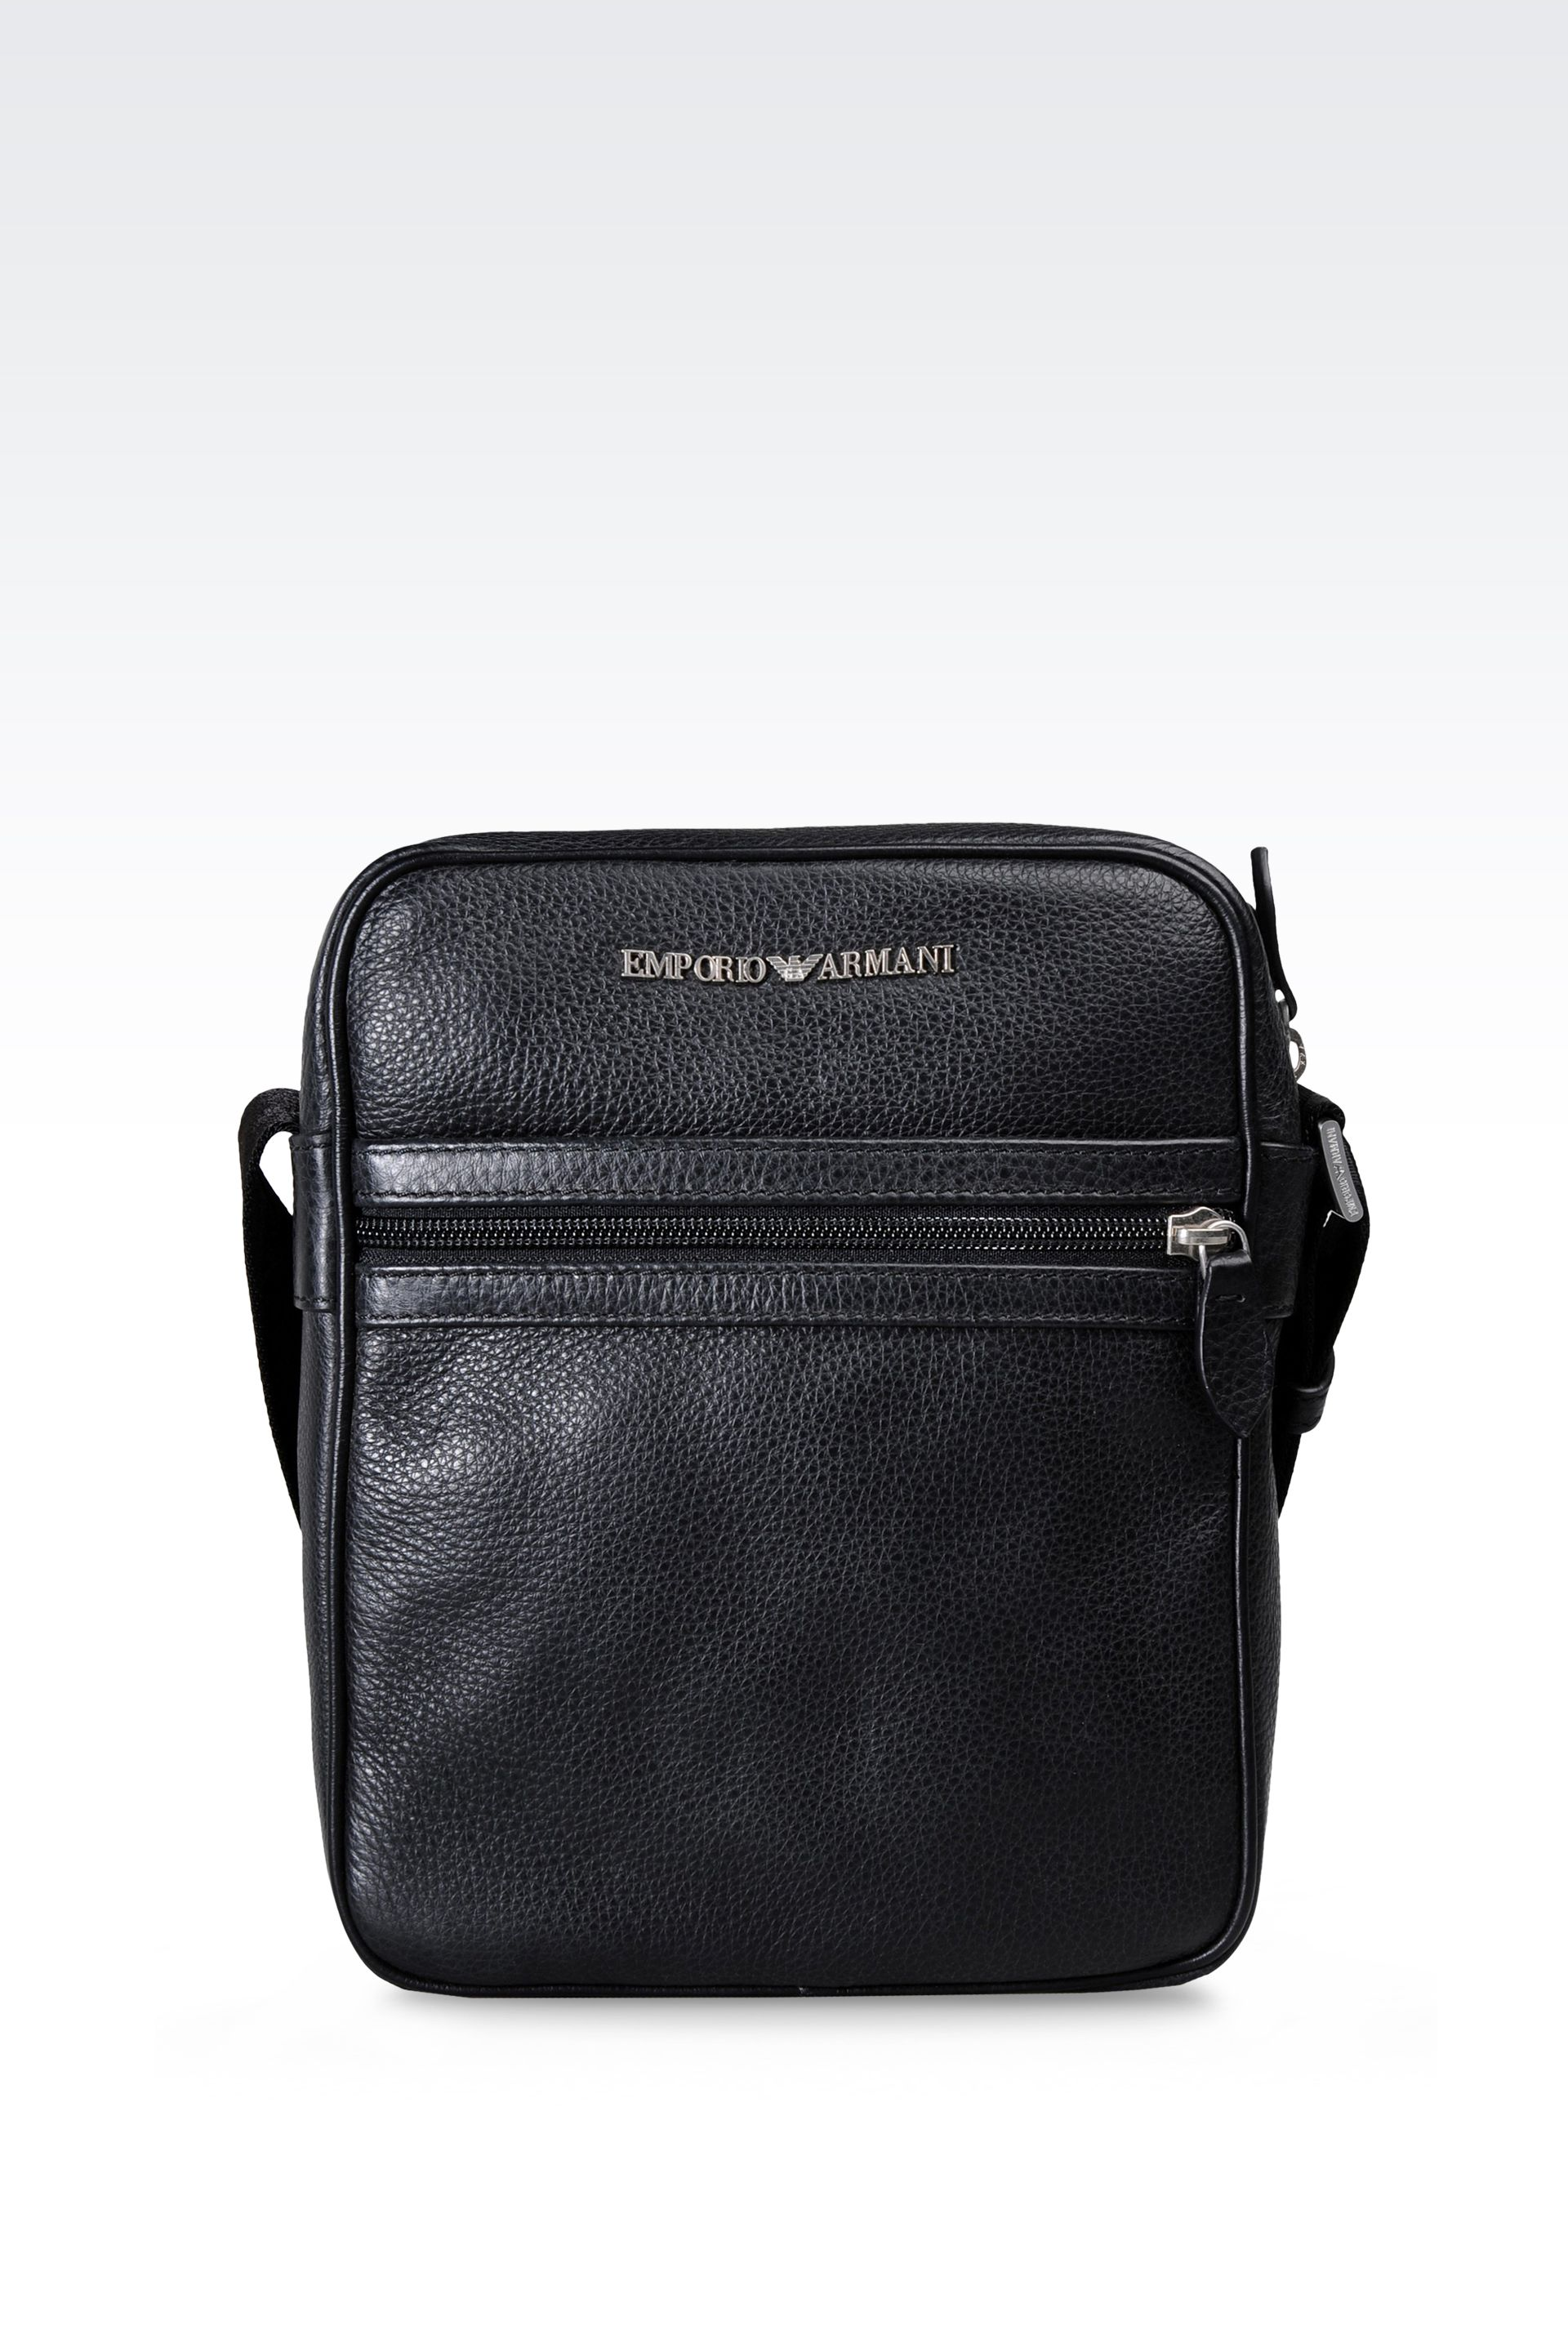 Lyst - Emporio Armani Small Leather Shoulder Bag in Black for Men 291246c8ae4a2